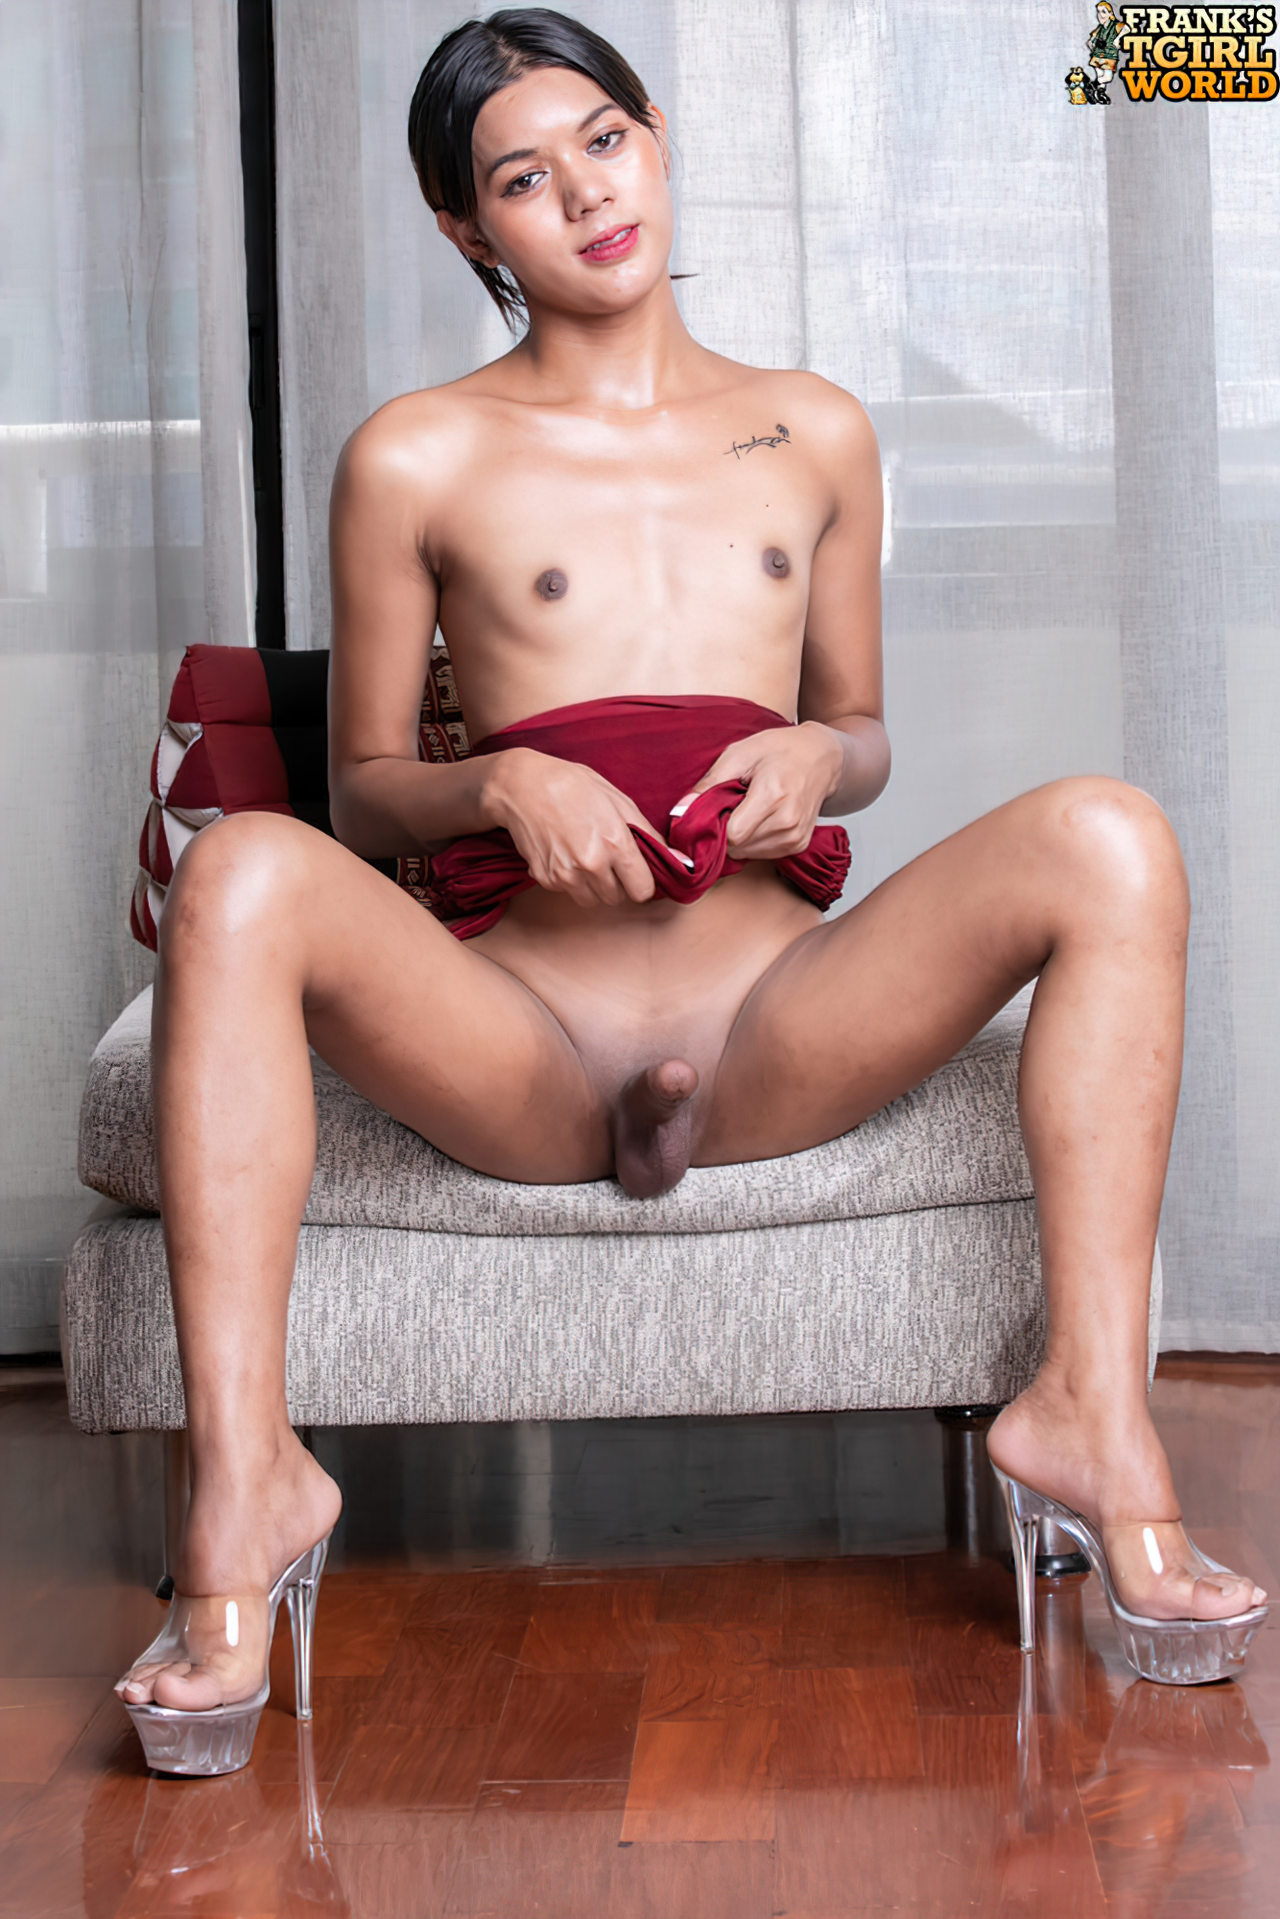 Fotos de Travestis (2)